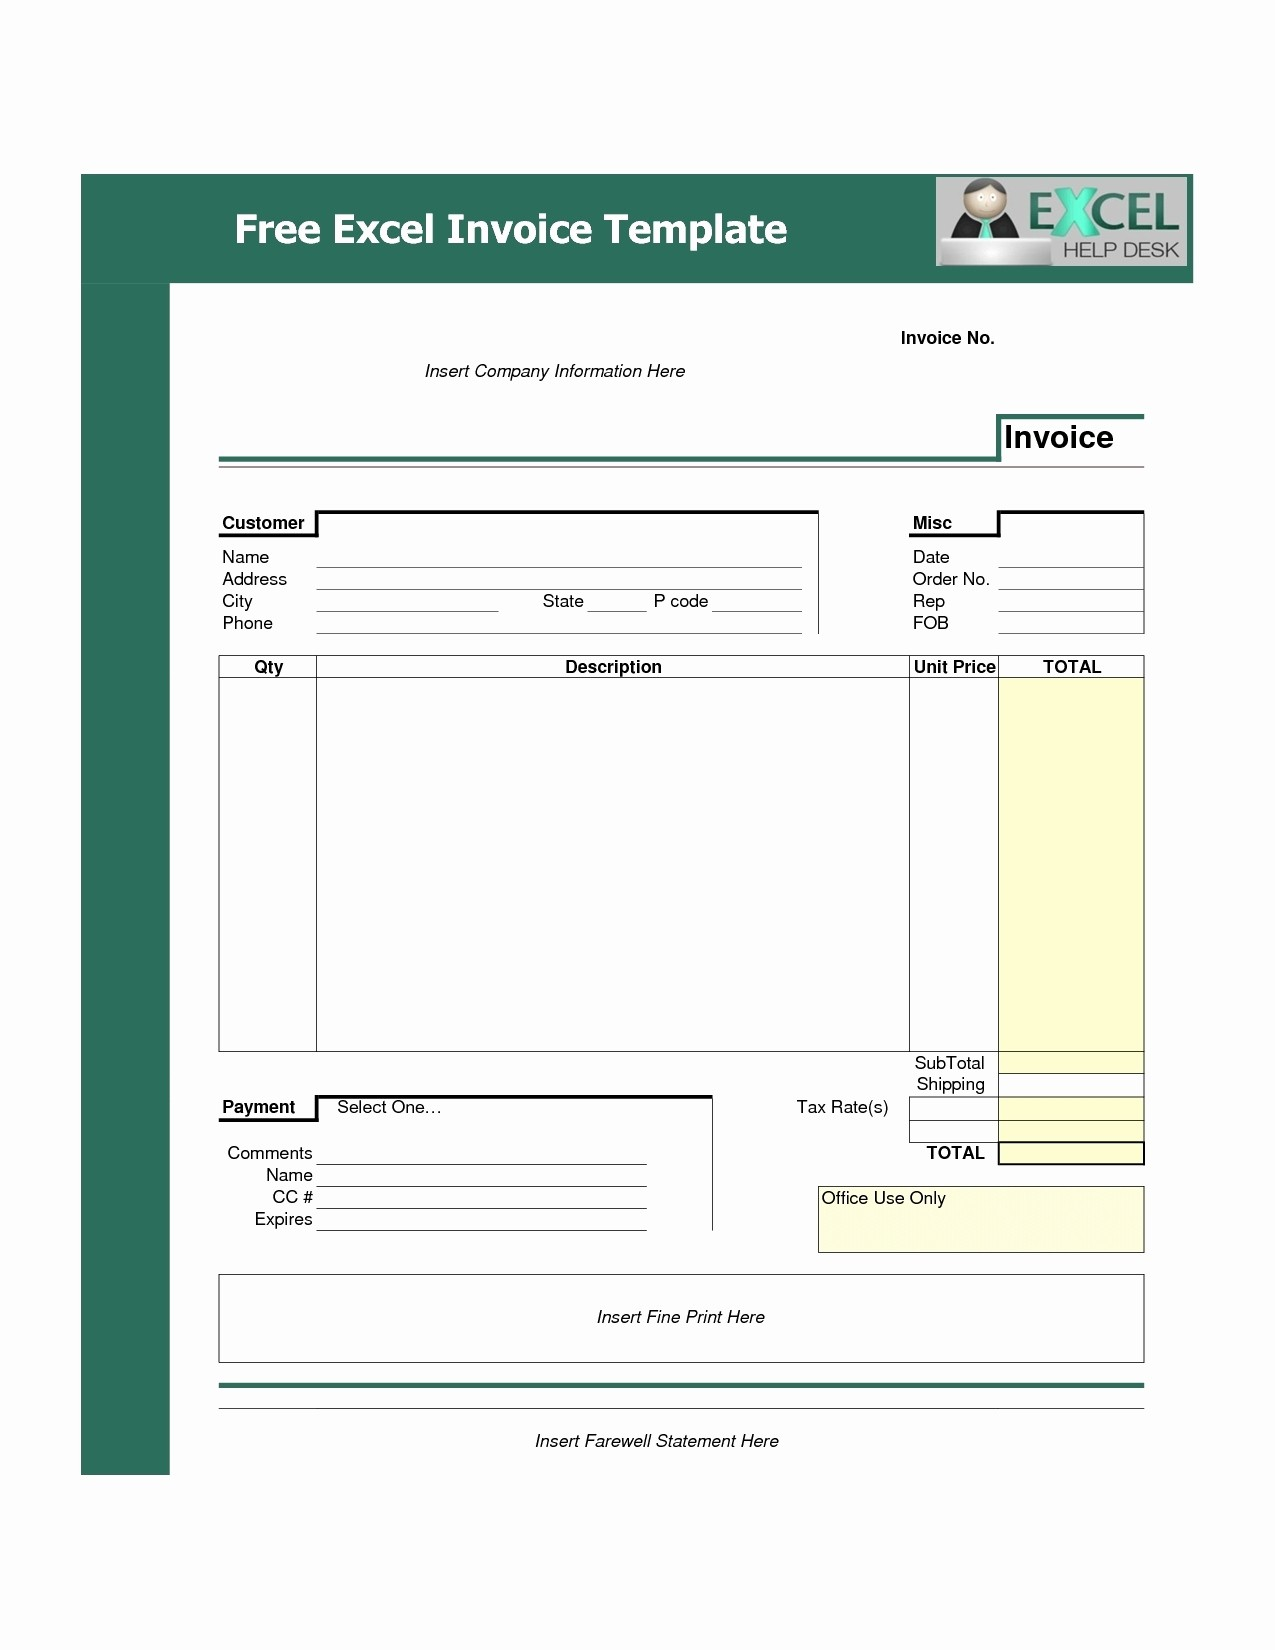 Free Templates for Billing Invoices Luxury Invoice Template Free Download Excel Invoice Template Ideas